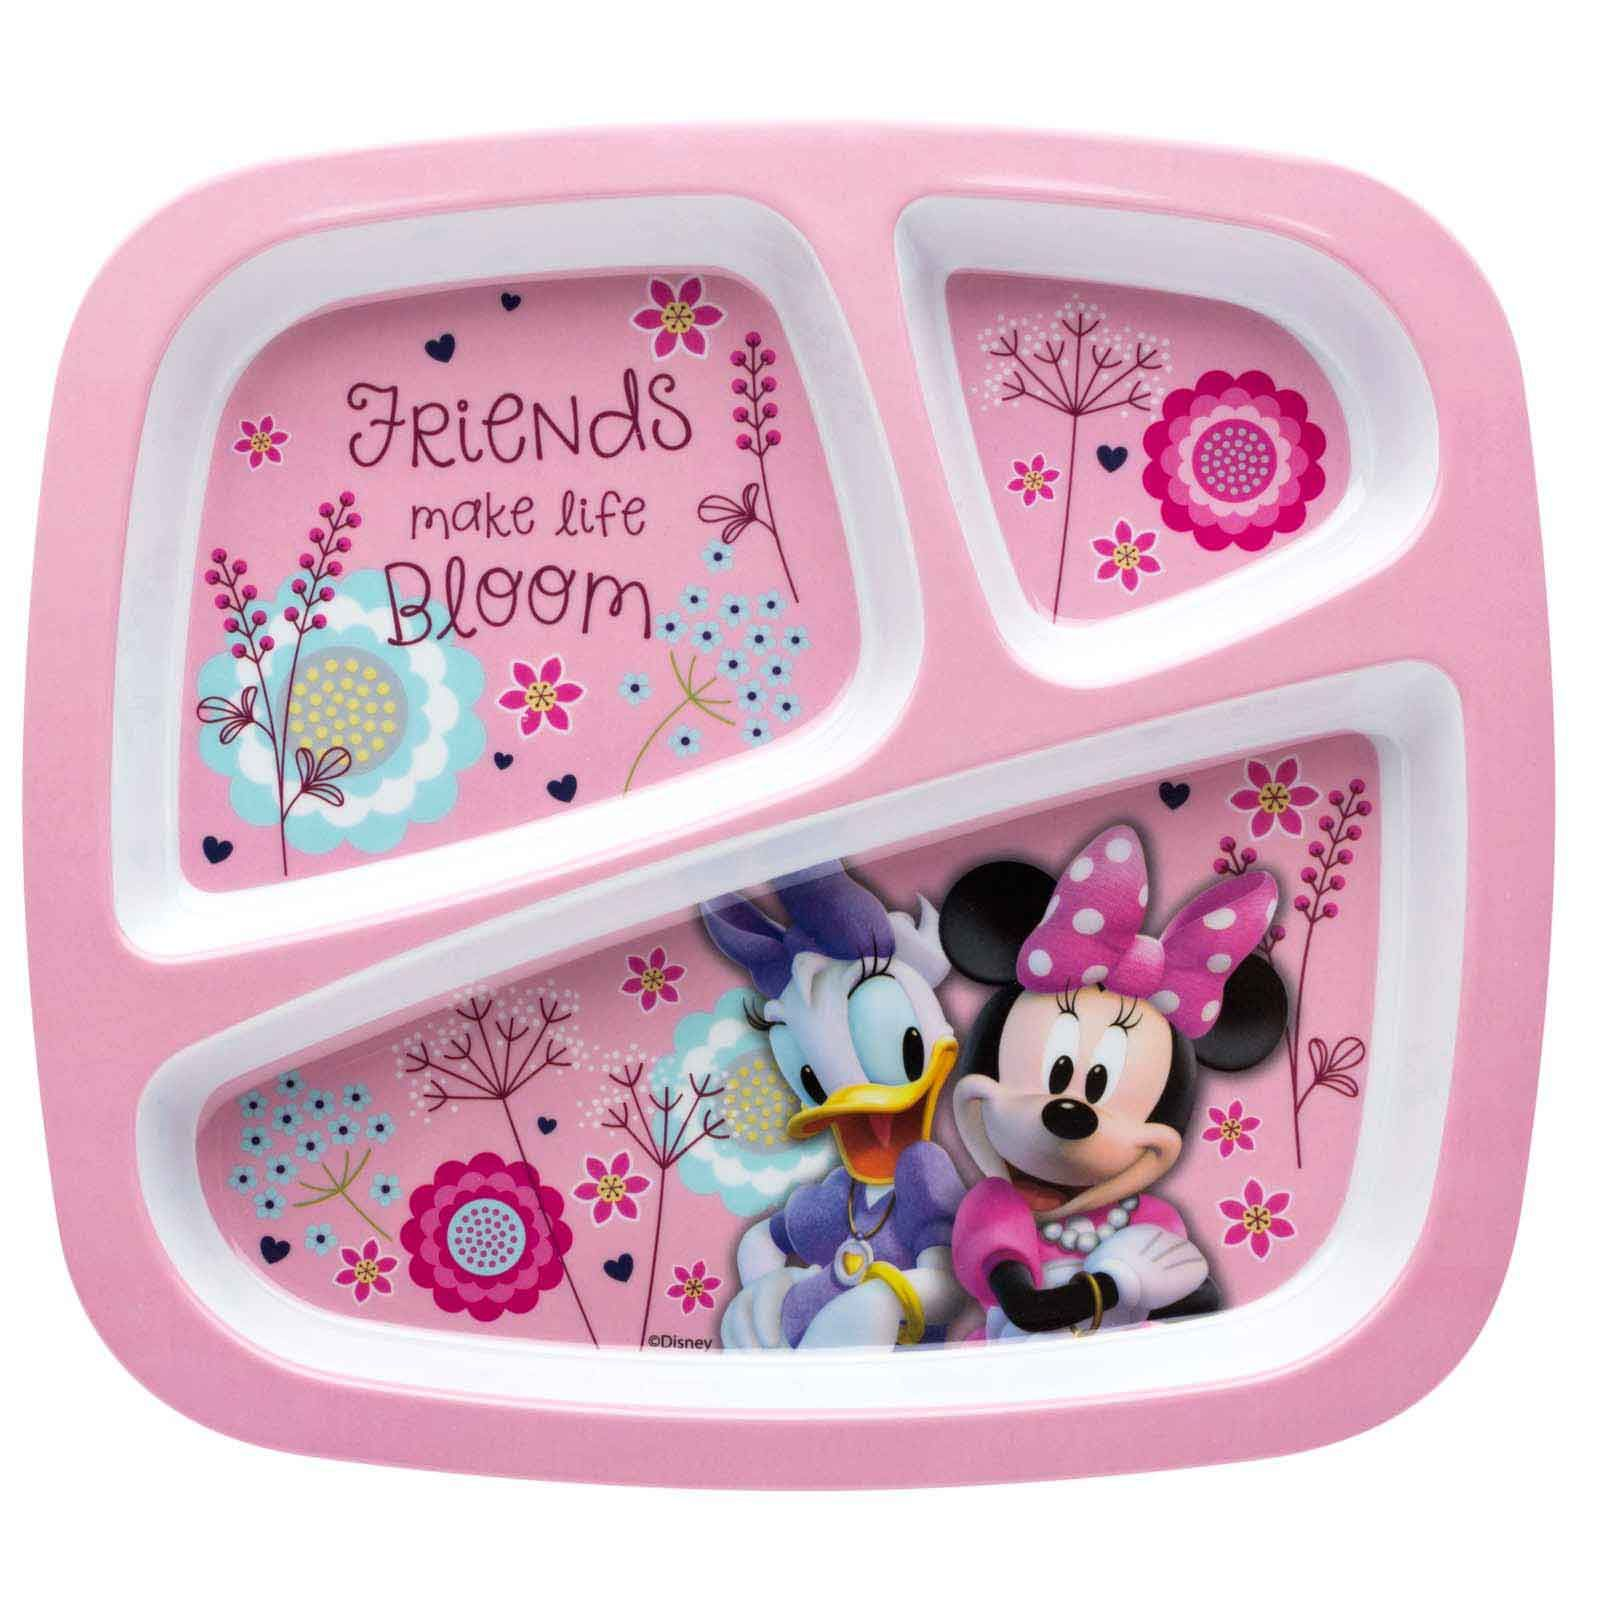 Shop Zak.com for a great mix of Minnie Mouse products BPA free Divided Plates and more! Free shipping on orders over $50!  sc 1 st  Pinterest & Minnie Mouse Divided Plate for Kids - Minnie \u0026 Daisy Duck   Divided ...